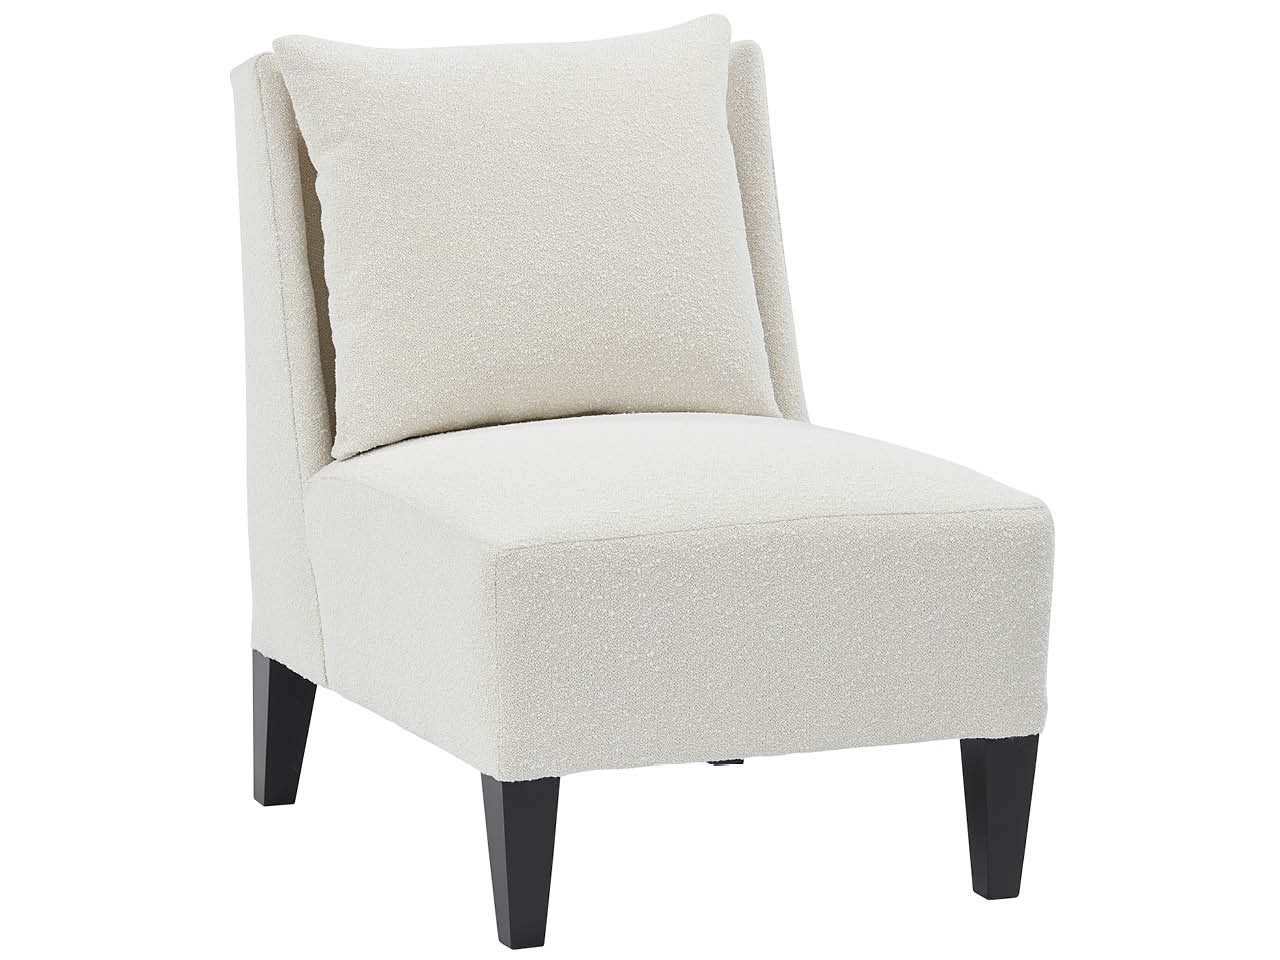 Garland Chair - Special Order